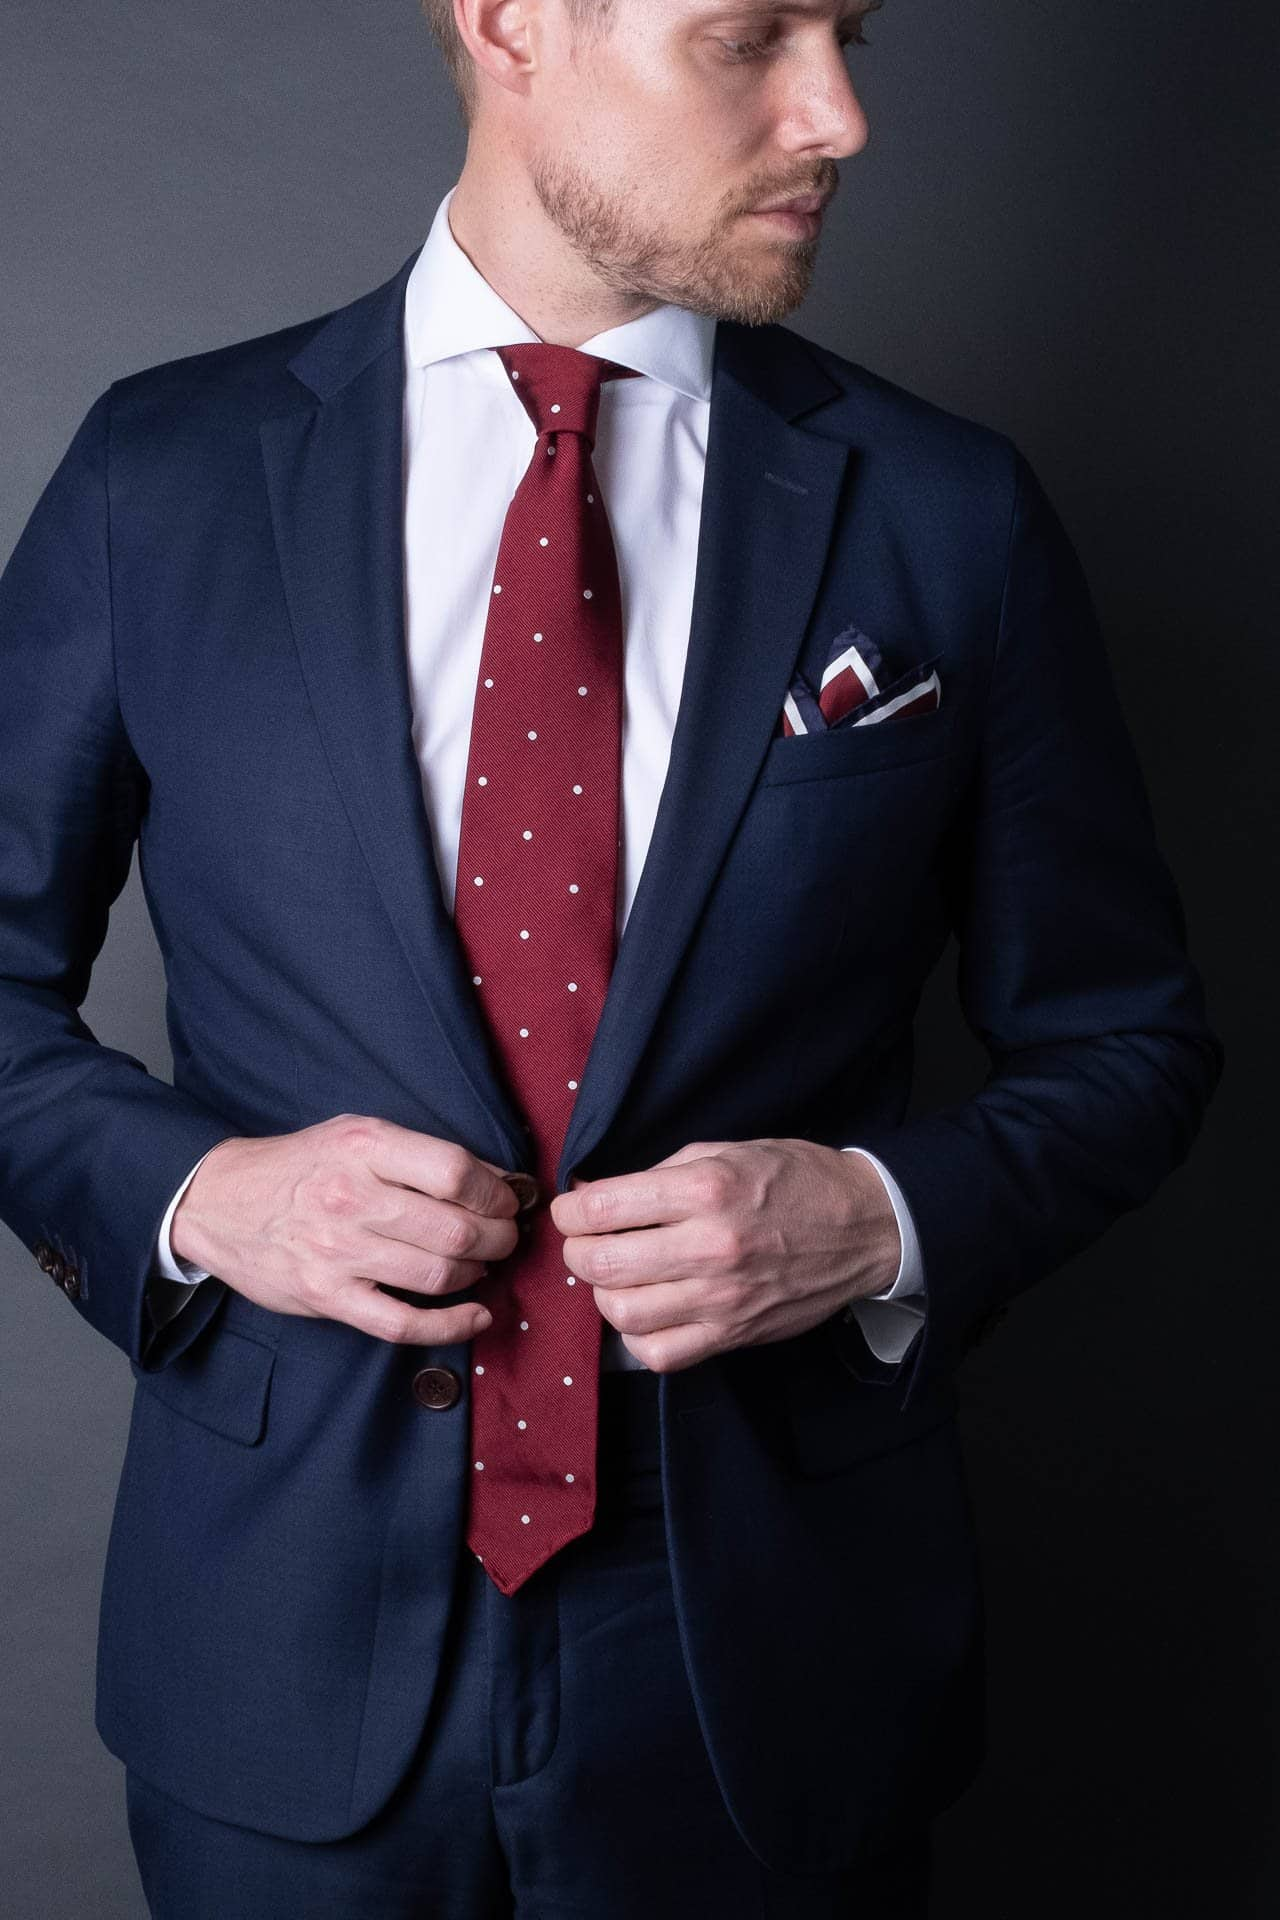 7-fold-maroon-red-polka-dot-silk-woven-tie-with-pointed-hand-tip-made-in-italy